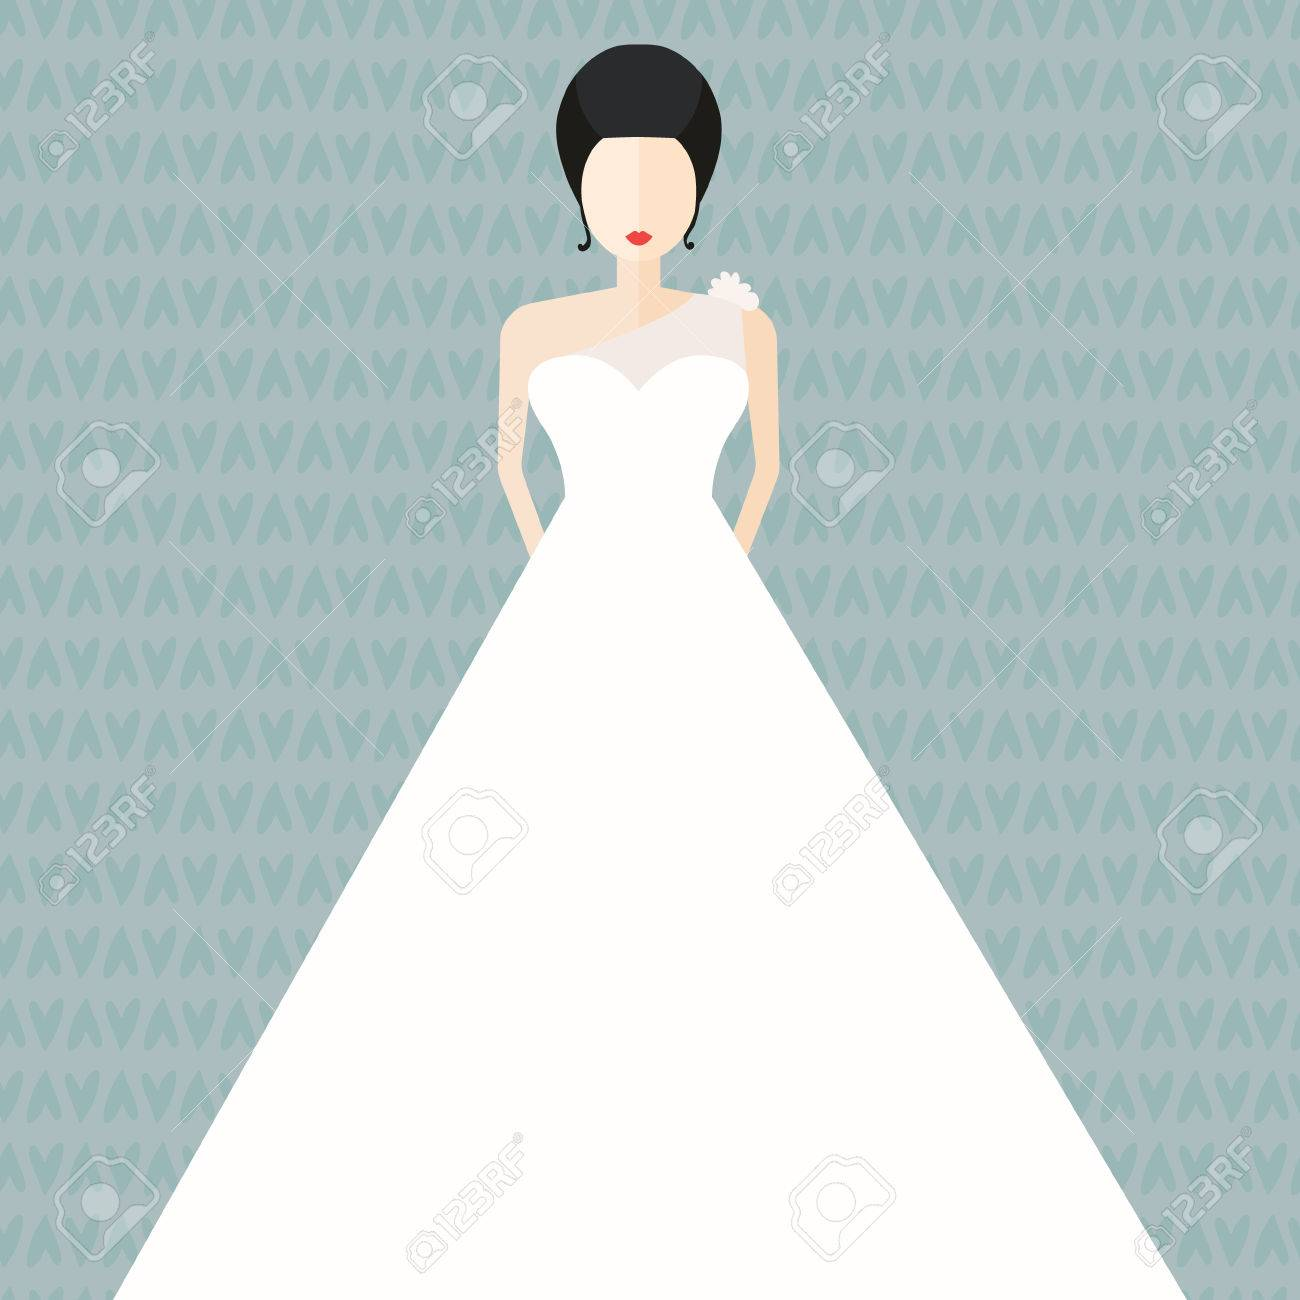 Modern Bridal Vector Illustration - Bride In White Dress With ...